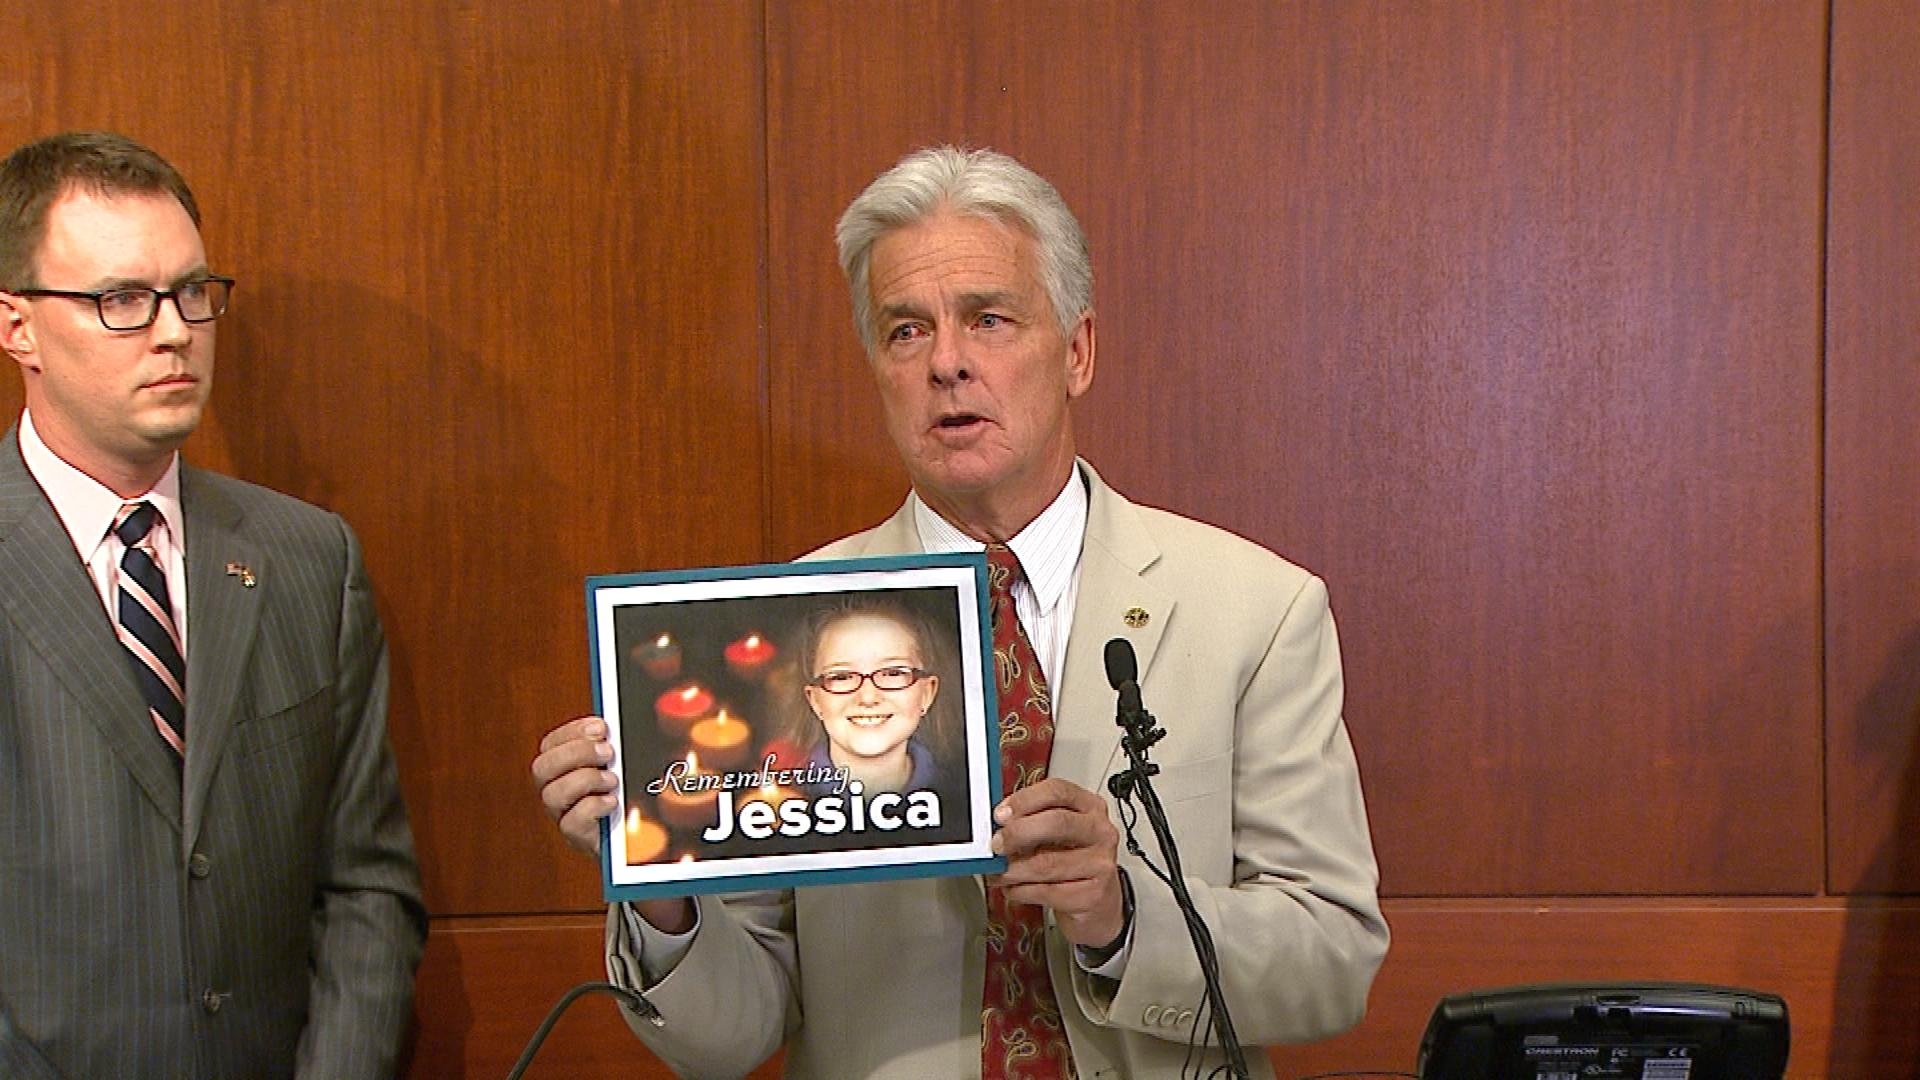 Denver District Attorney Mitch Morrissey holds up a picture of Jessica Ridgeway on Monda (credit: CBS)